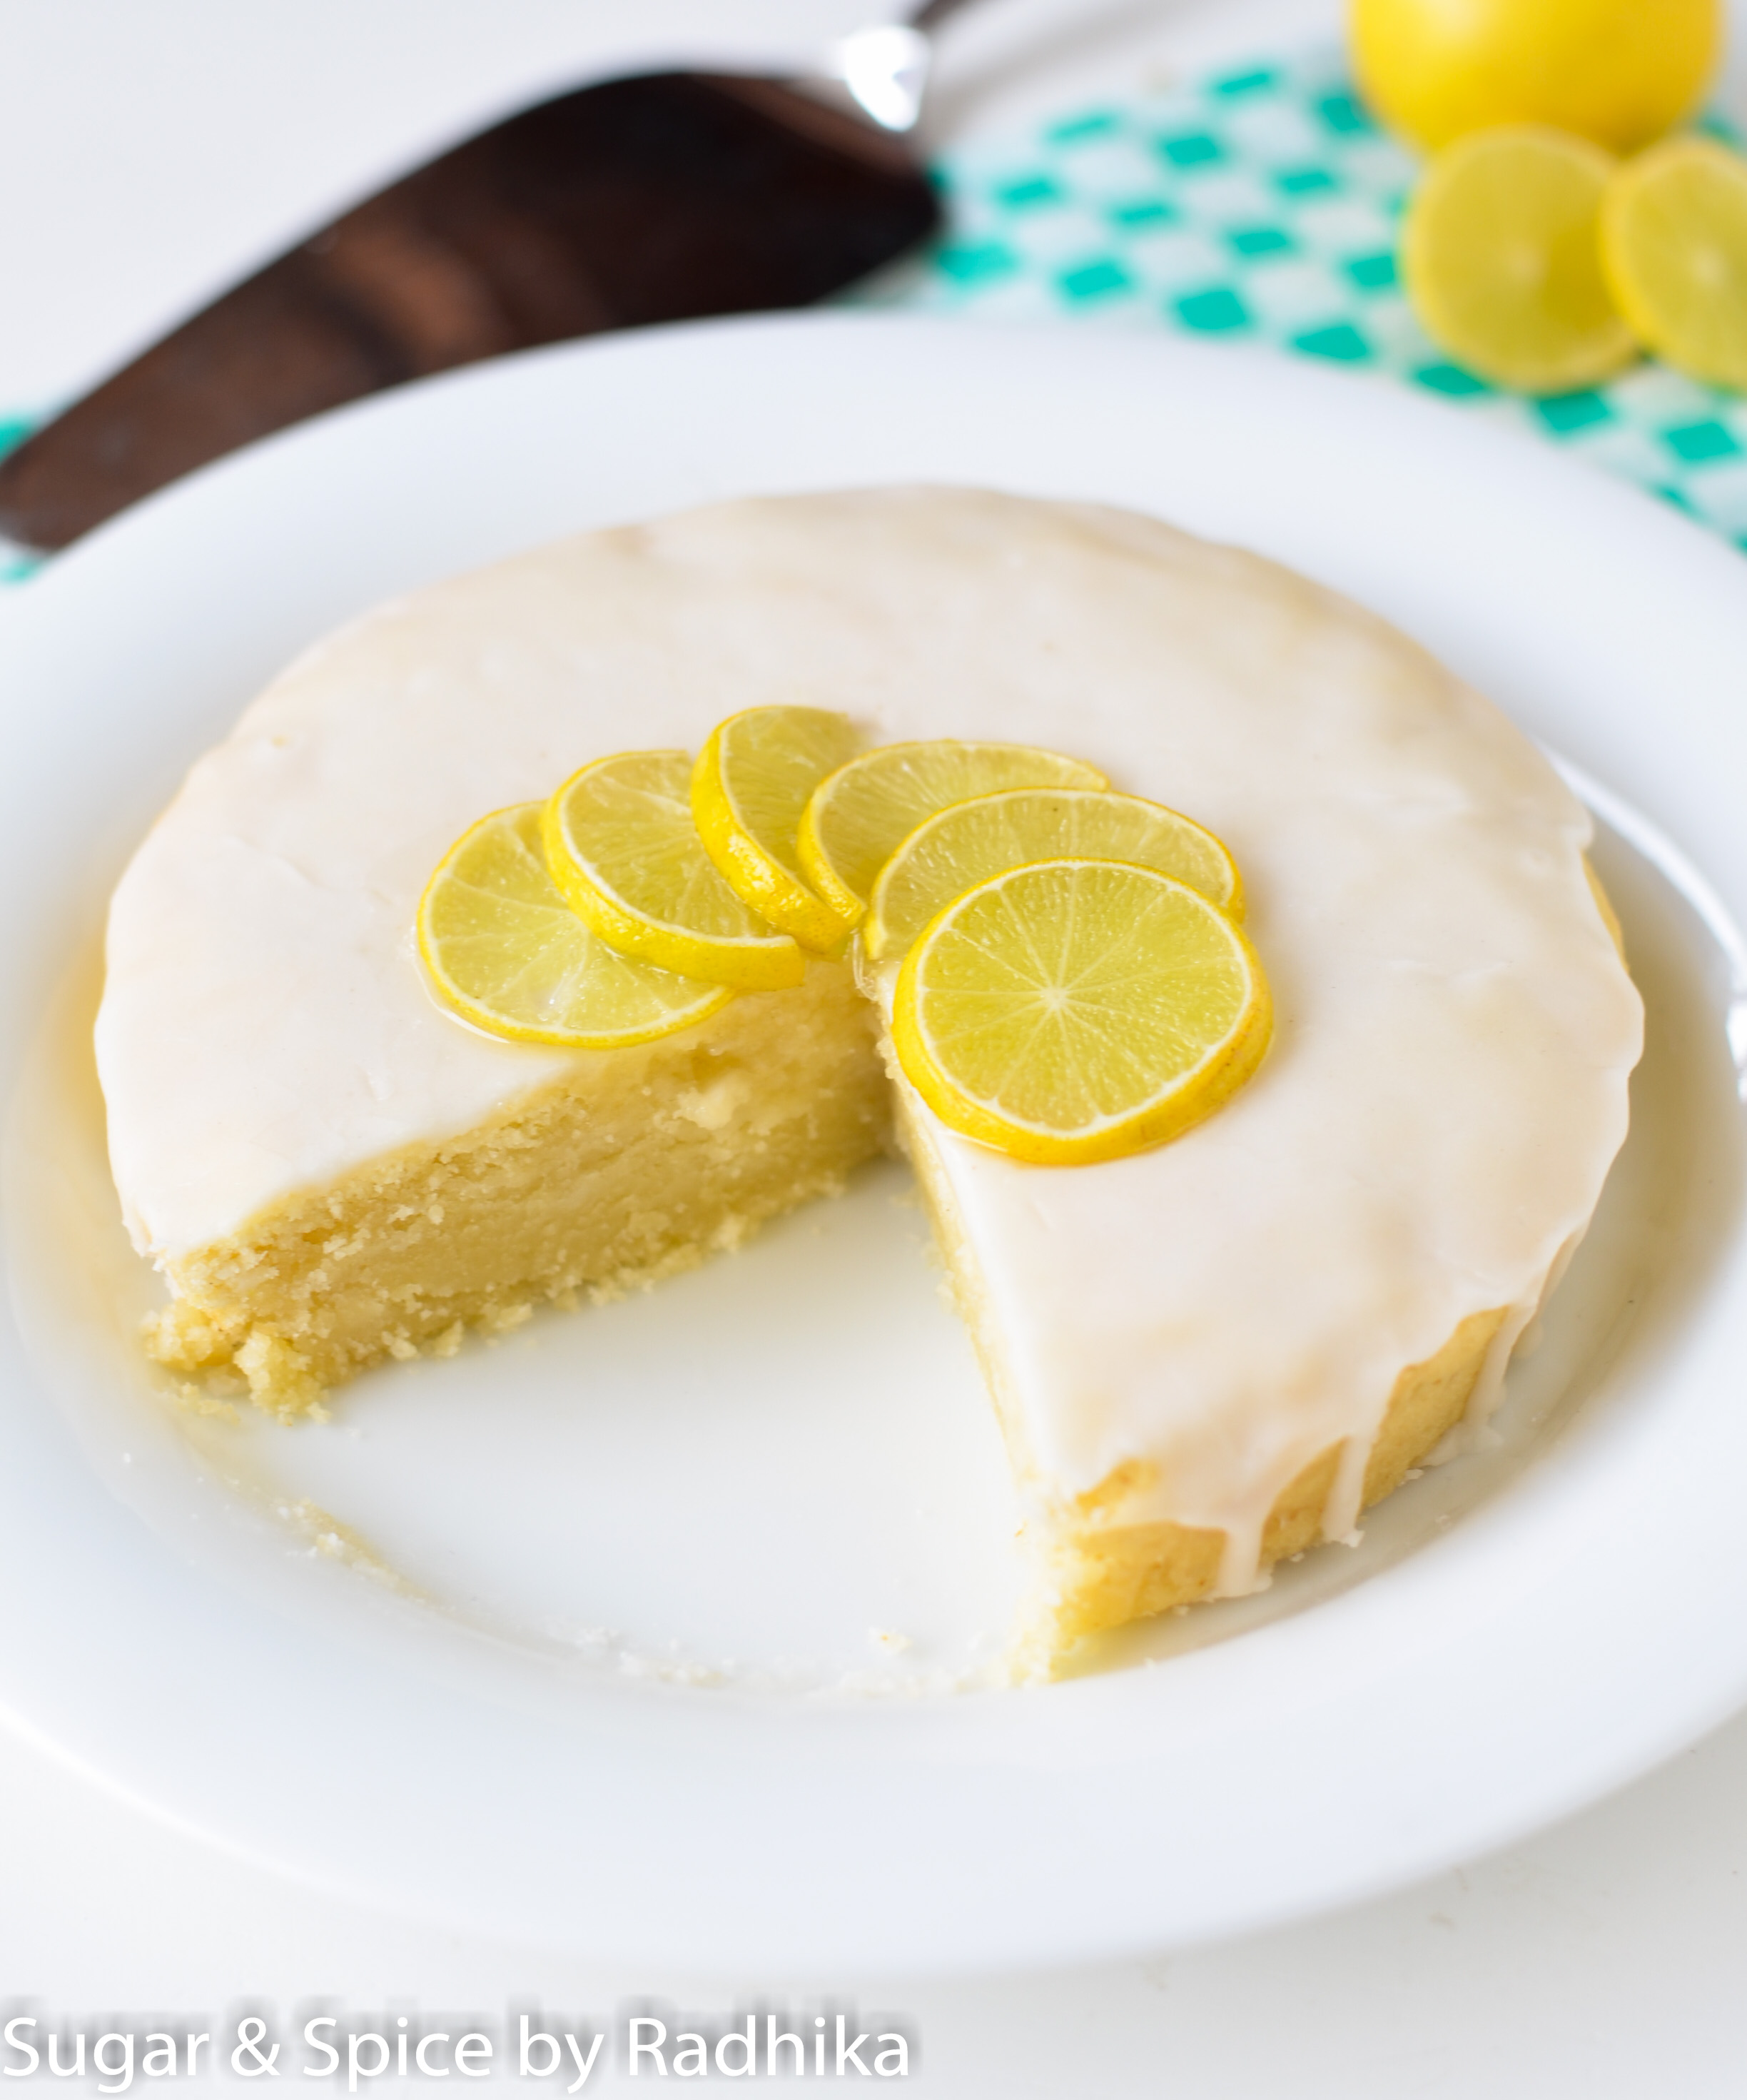 Eggless Lemon Drizzle Cake The Improved Version Sugar Spice By